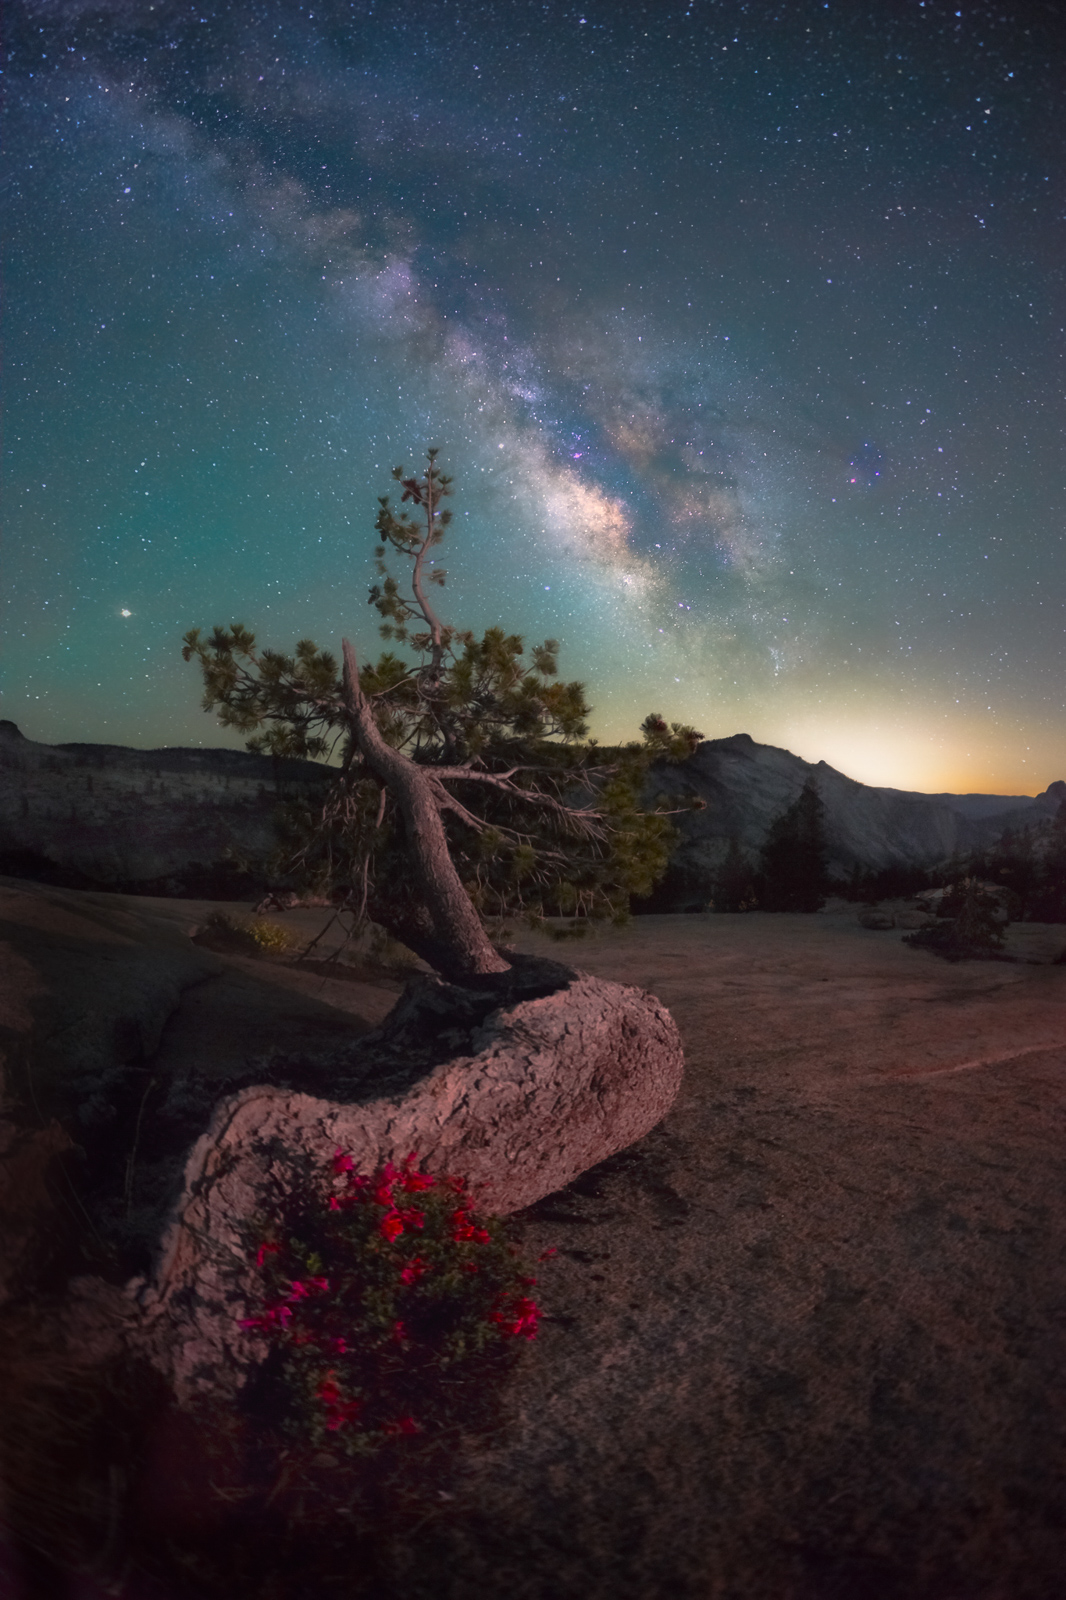 Bonsai, Half Dome, Jeffrey, Olmsted Point, Penstemon, Penstemon newberryi, Pine, Pinus jeffreyi, Pride, Yosemite, milky way, mountain, rock, tree, wildflower, photo